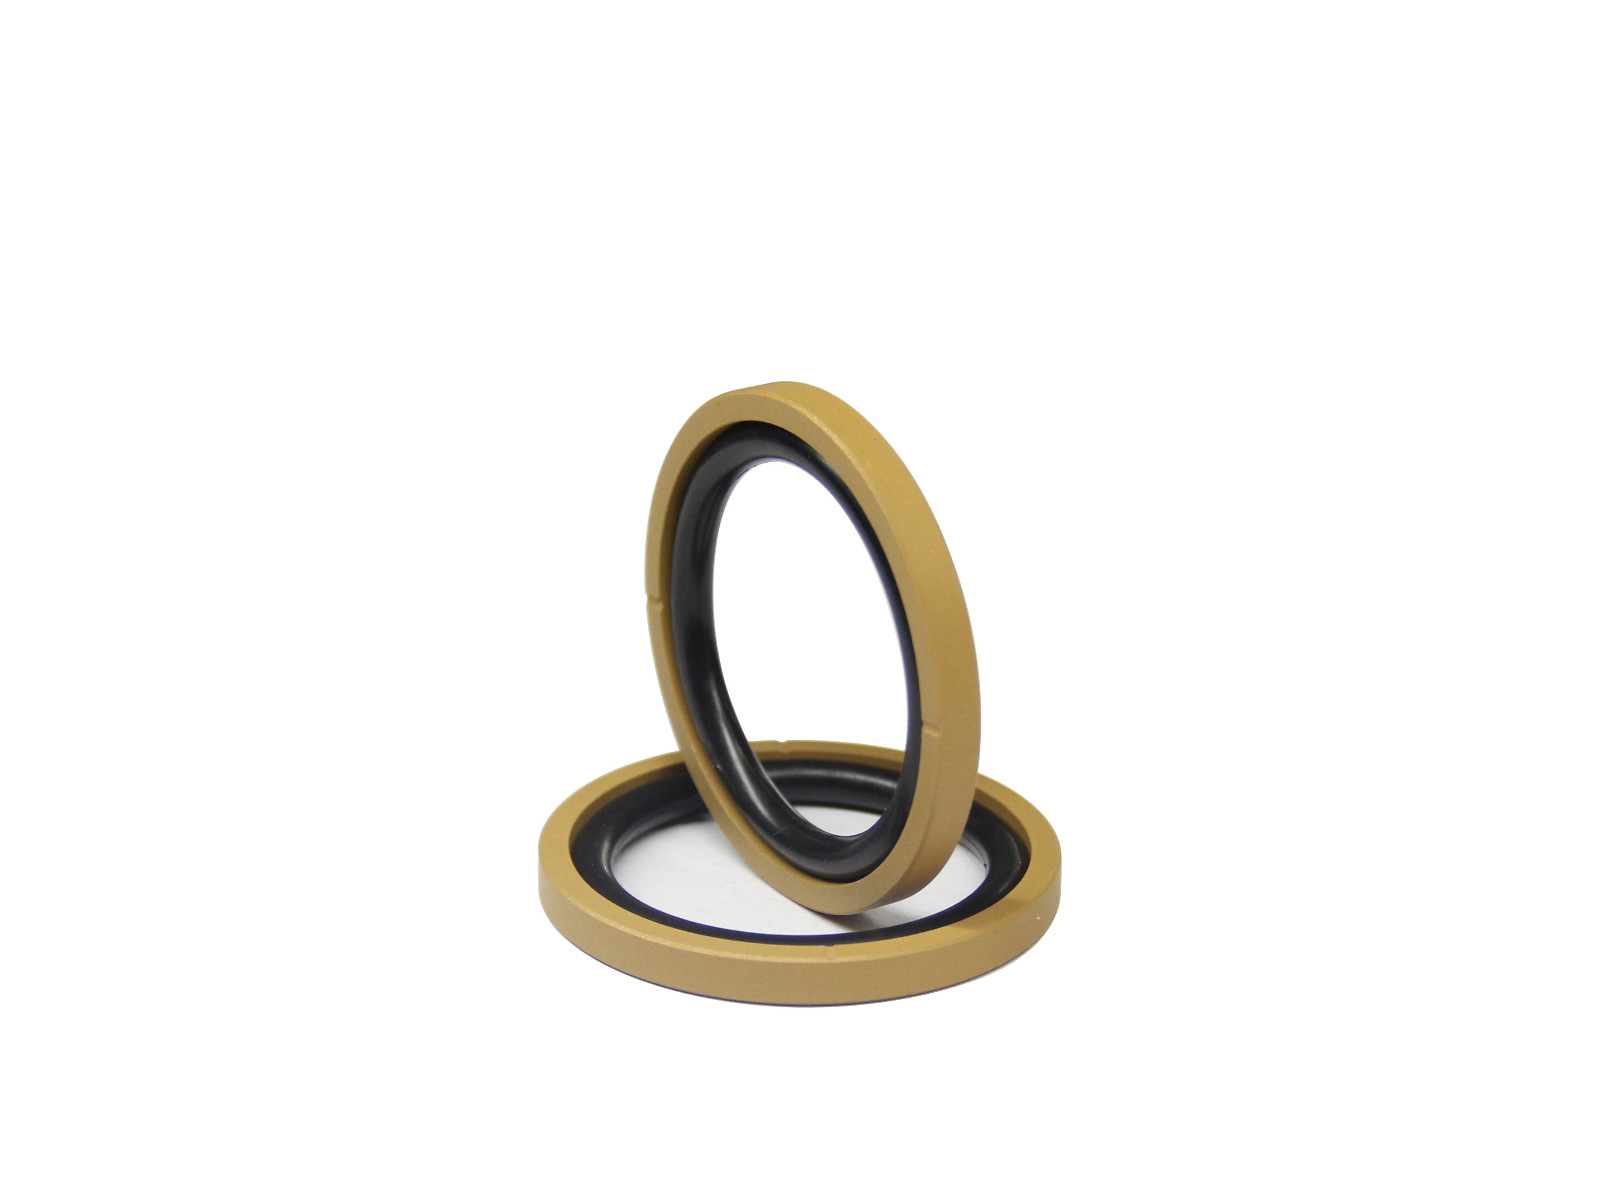 DSH-Piston Seal Design | Piston Seal Bronze Filled PTFE Glyd Ring-5